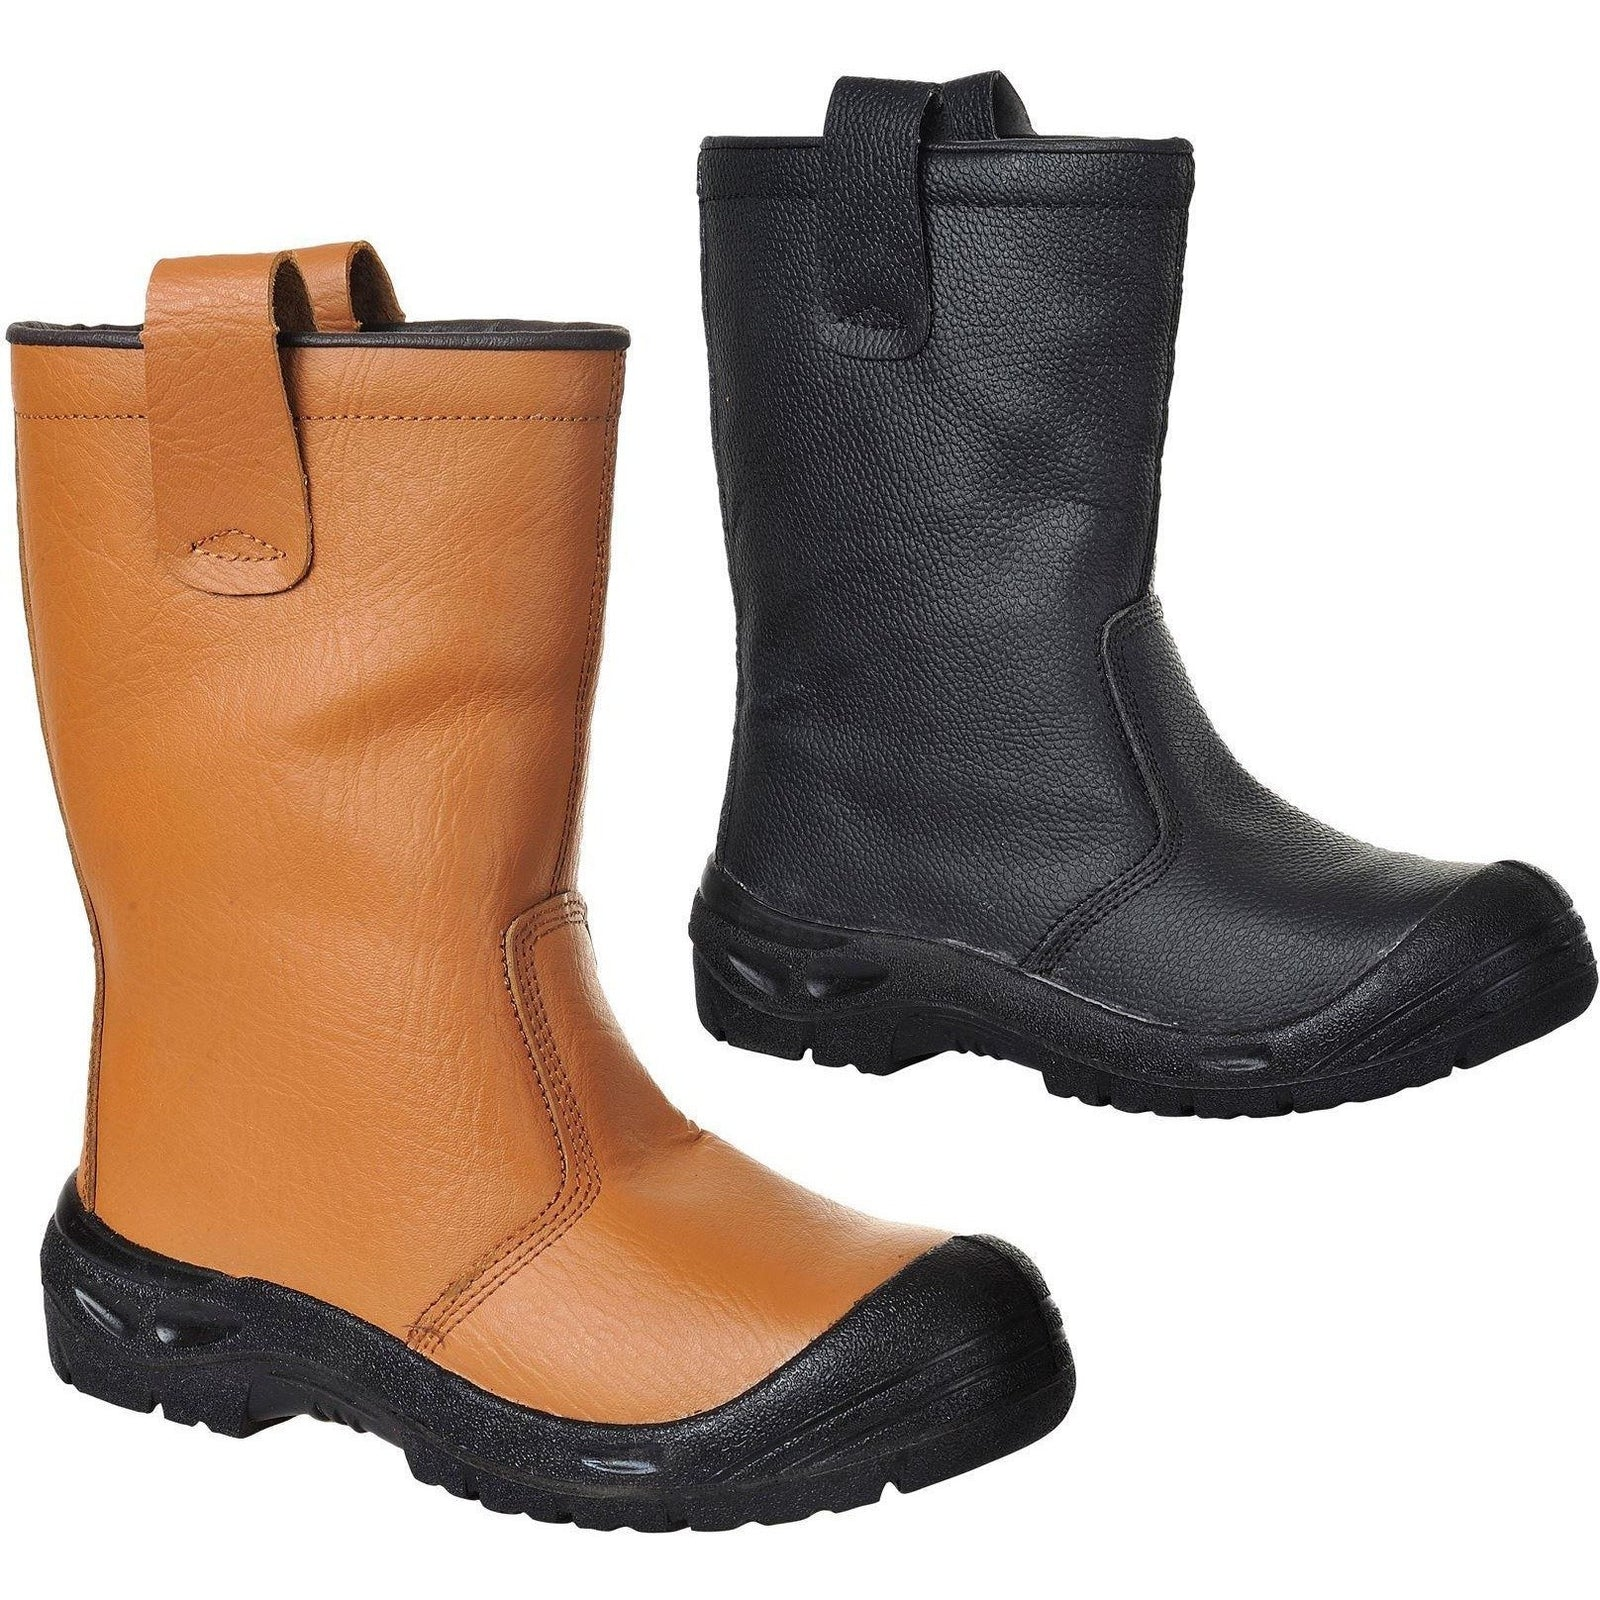 Portwest Steelite Rigger Boot Scuff Cap S3 CI - reid outdoors